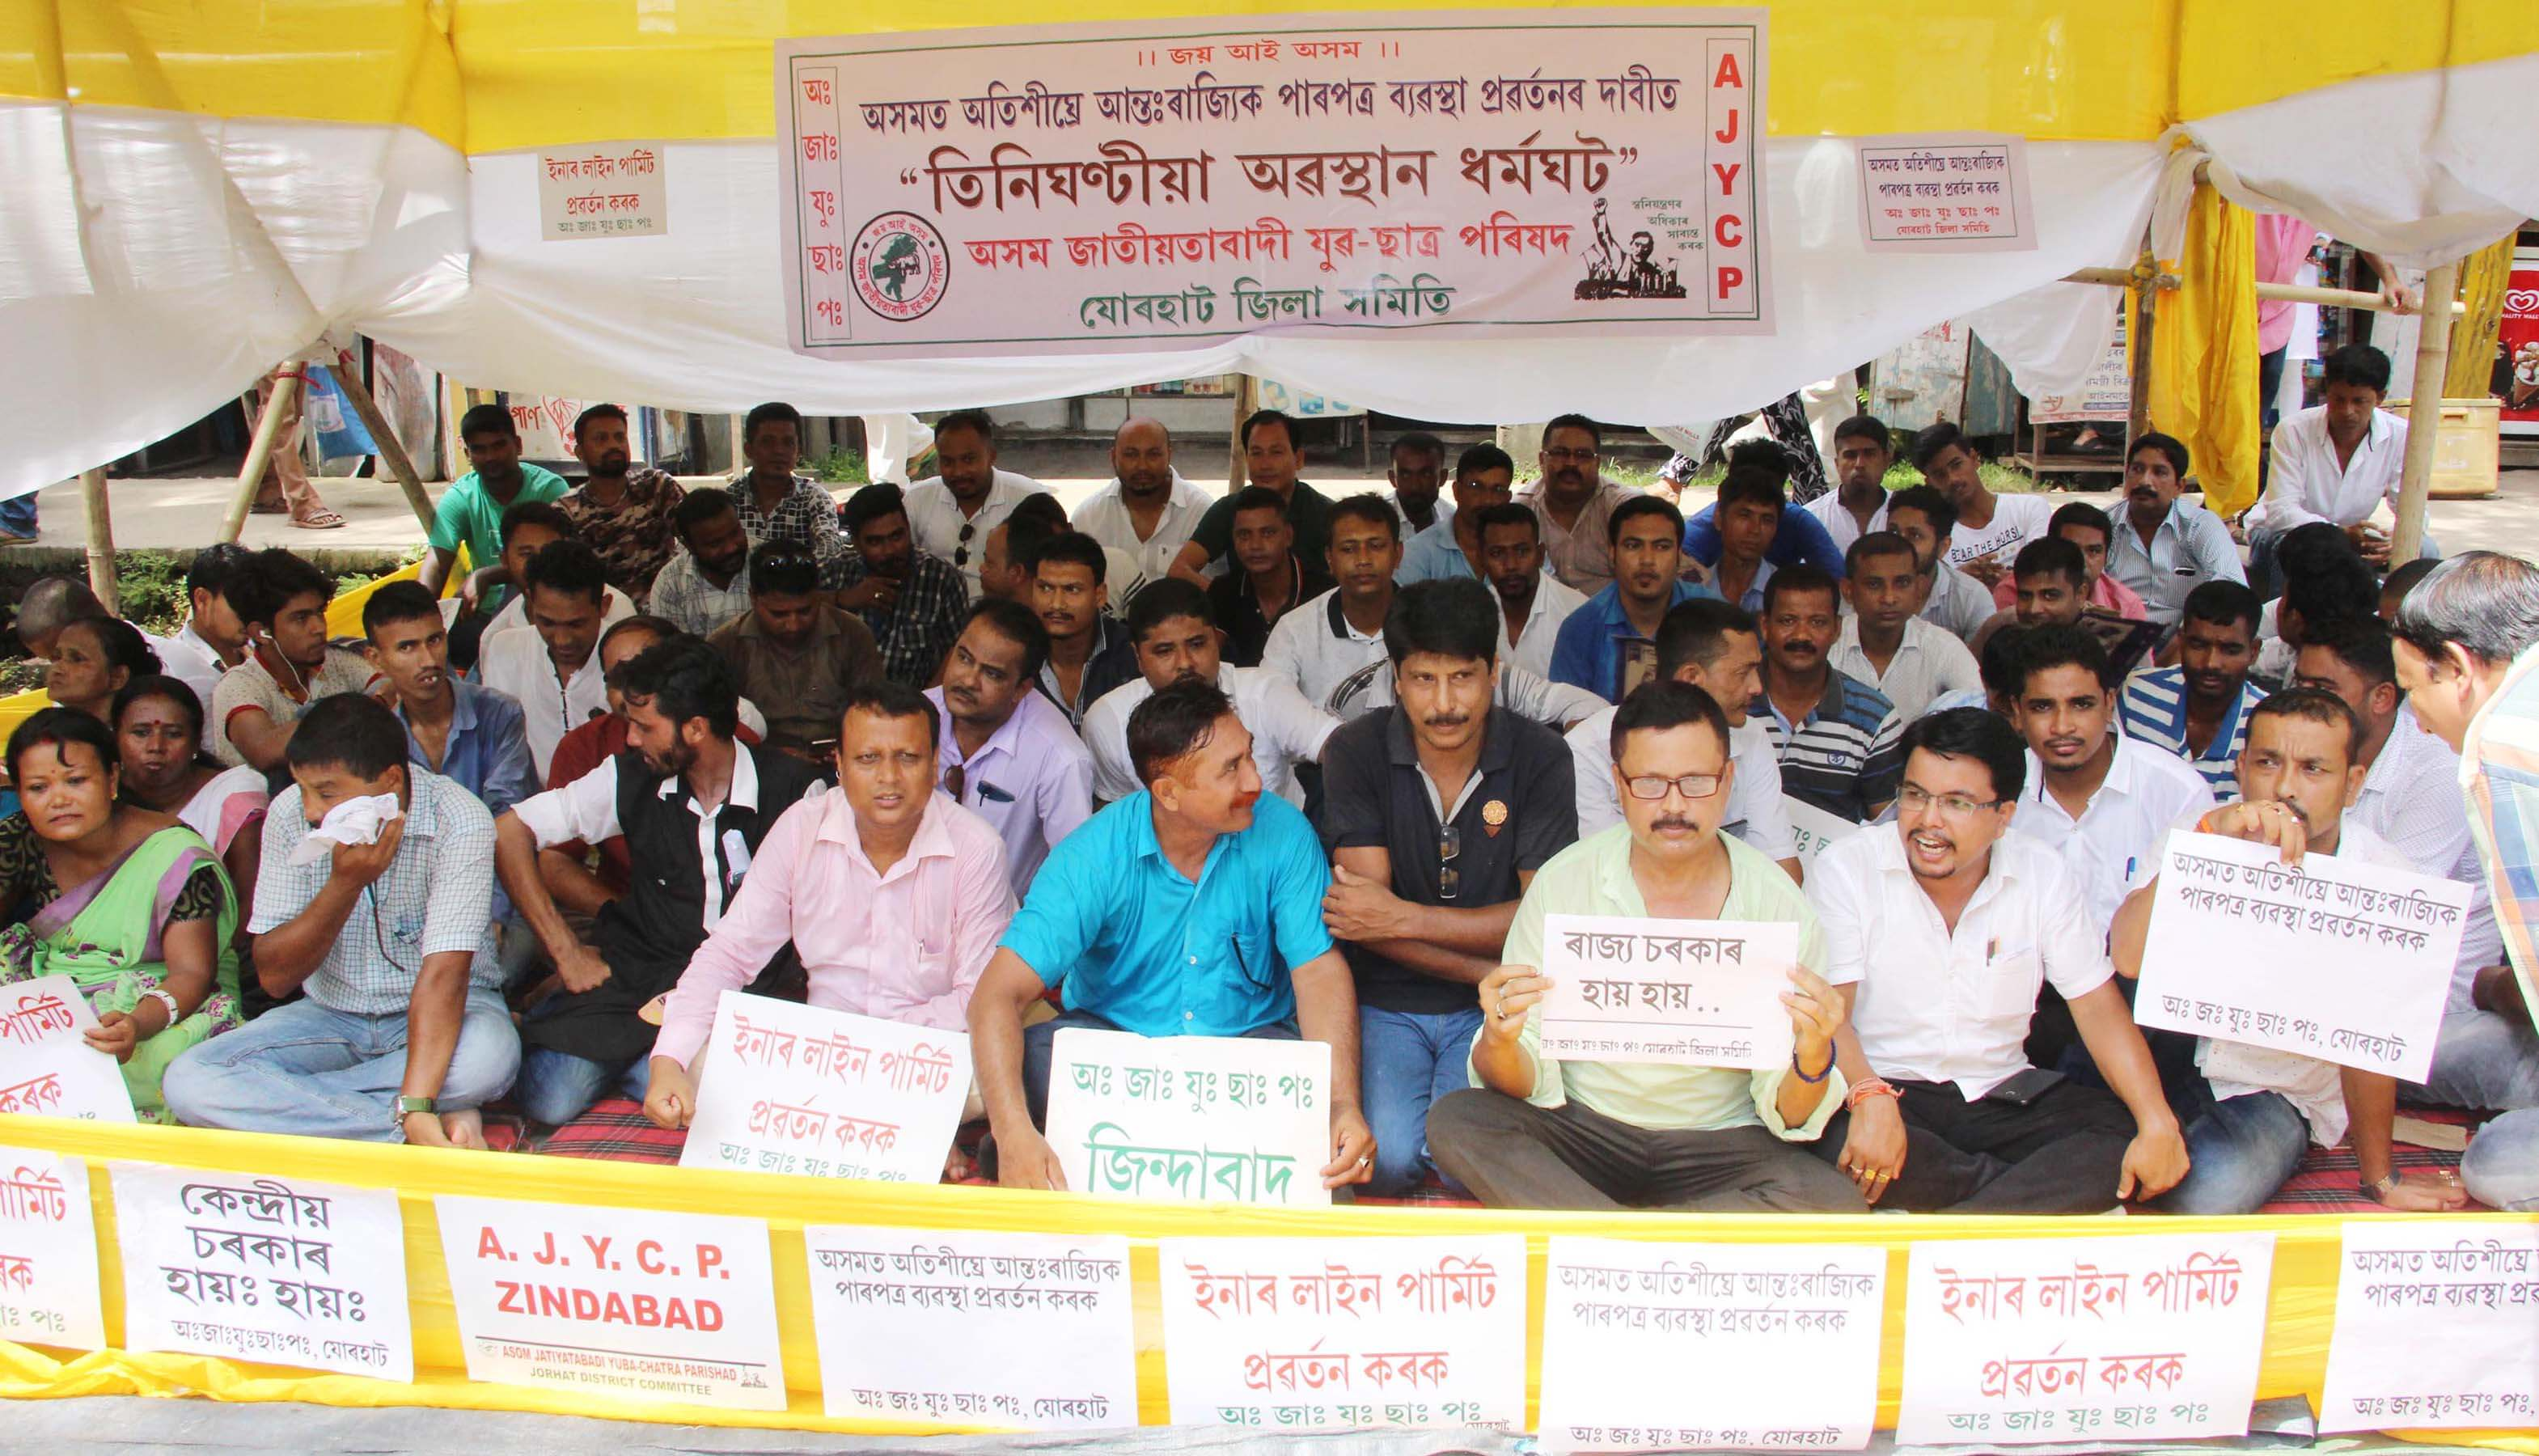 AJYCP stages protest to demand inner line permit